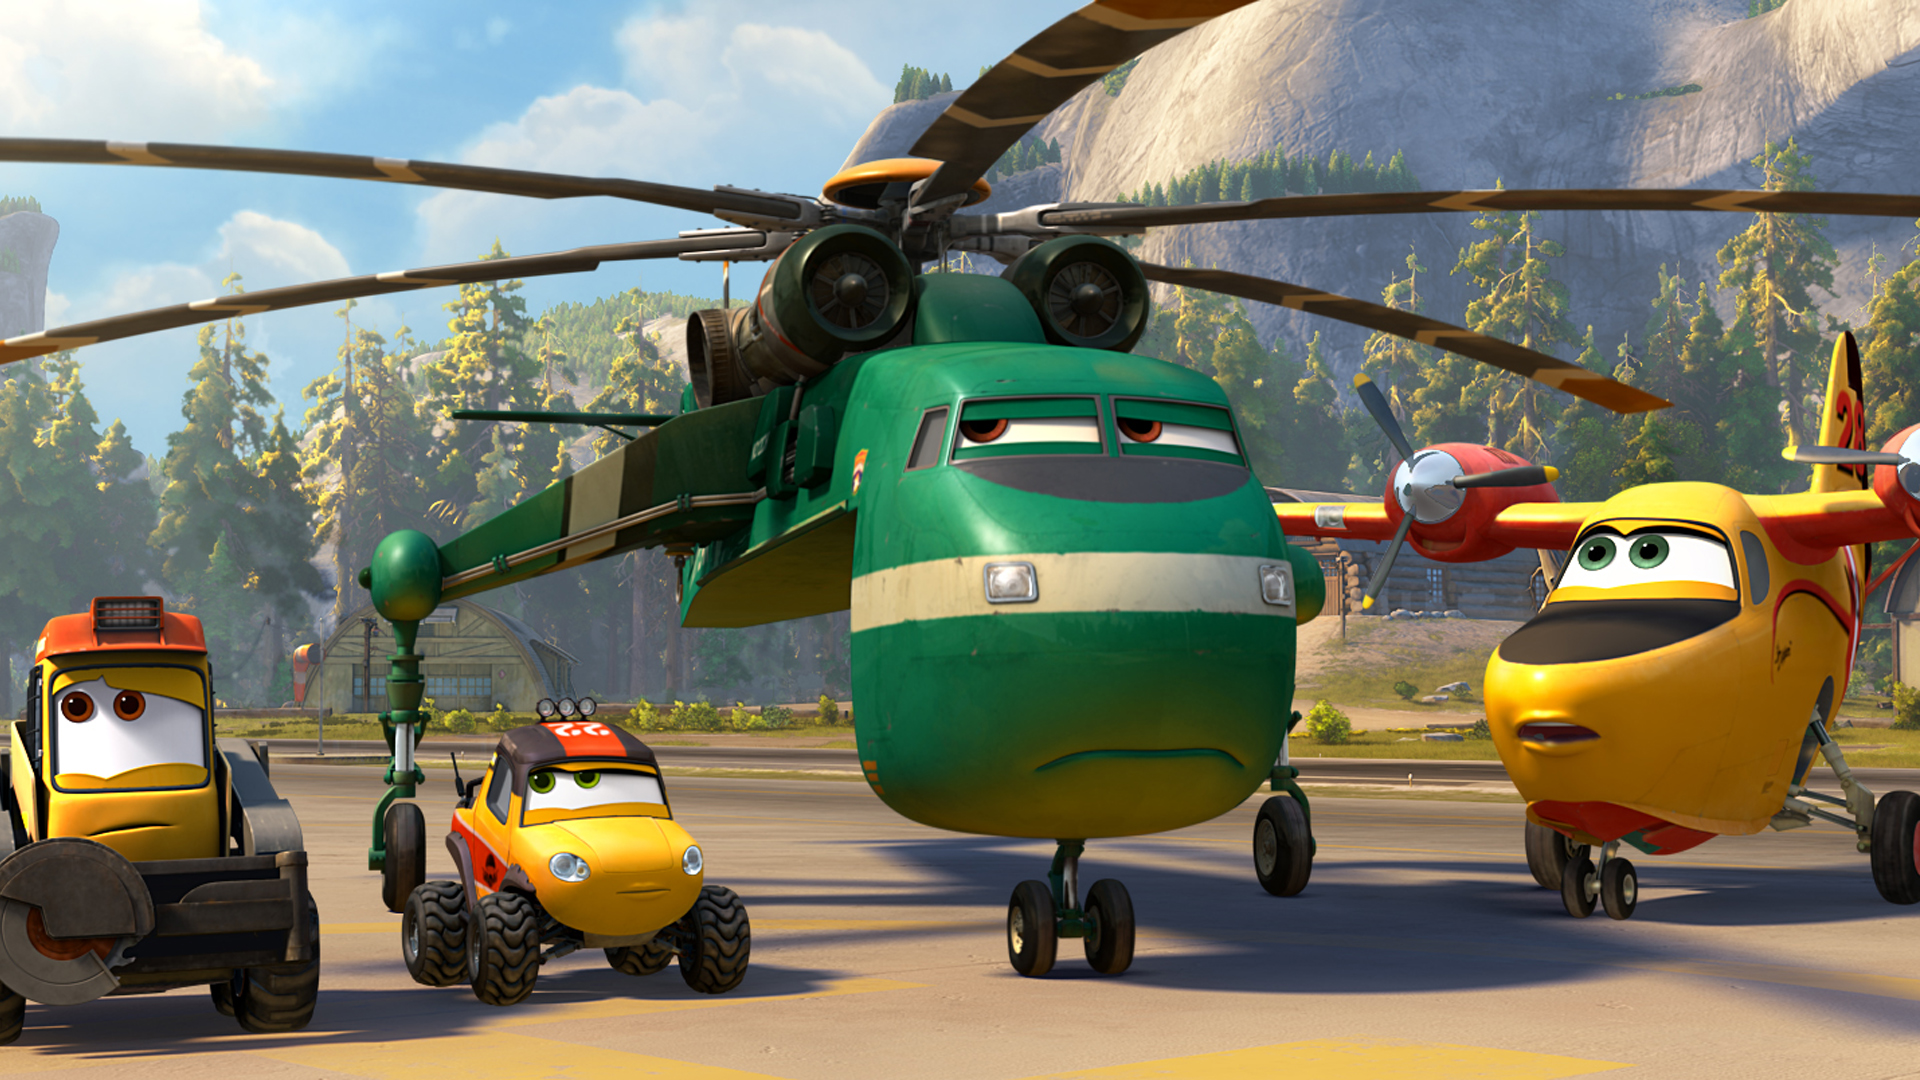 Planes fire rescue movie wallpaper hd download wallpaper voltagebd Images